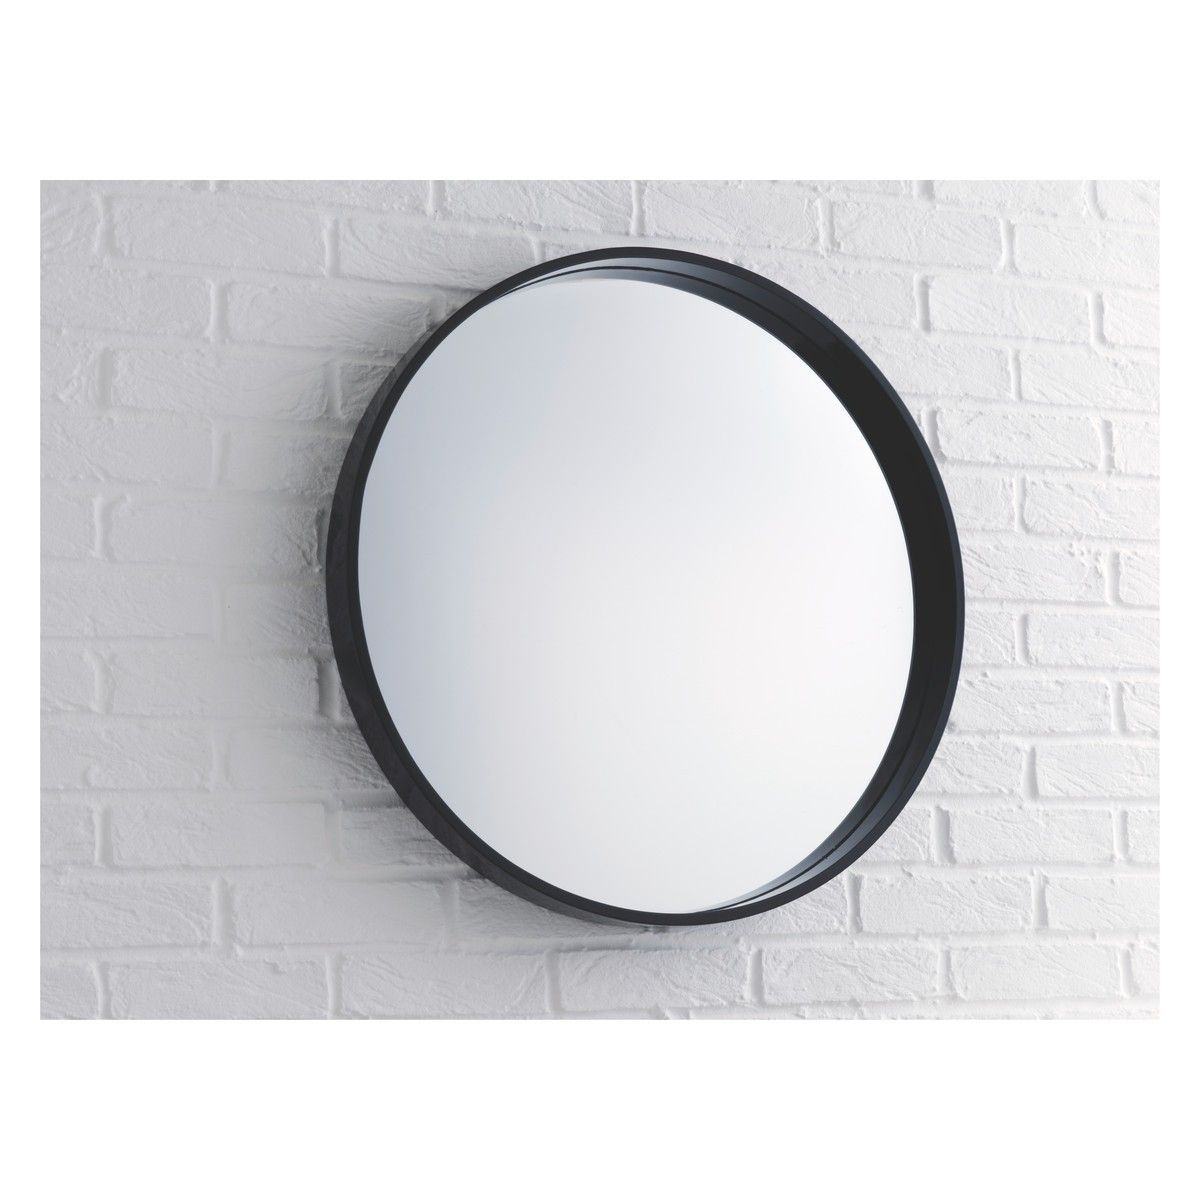 Aimee Black High Gloss Round Wall Mirror D65cm | Home Decor Pertaining To Round Galvanized Metallic Wall Mirrors (View 6 of 30)